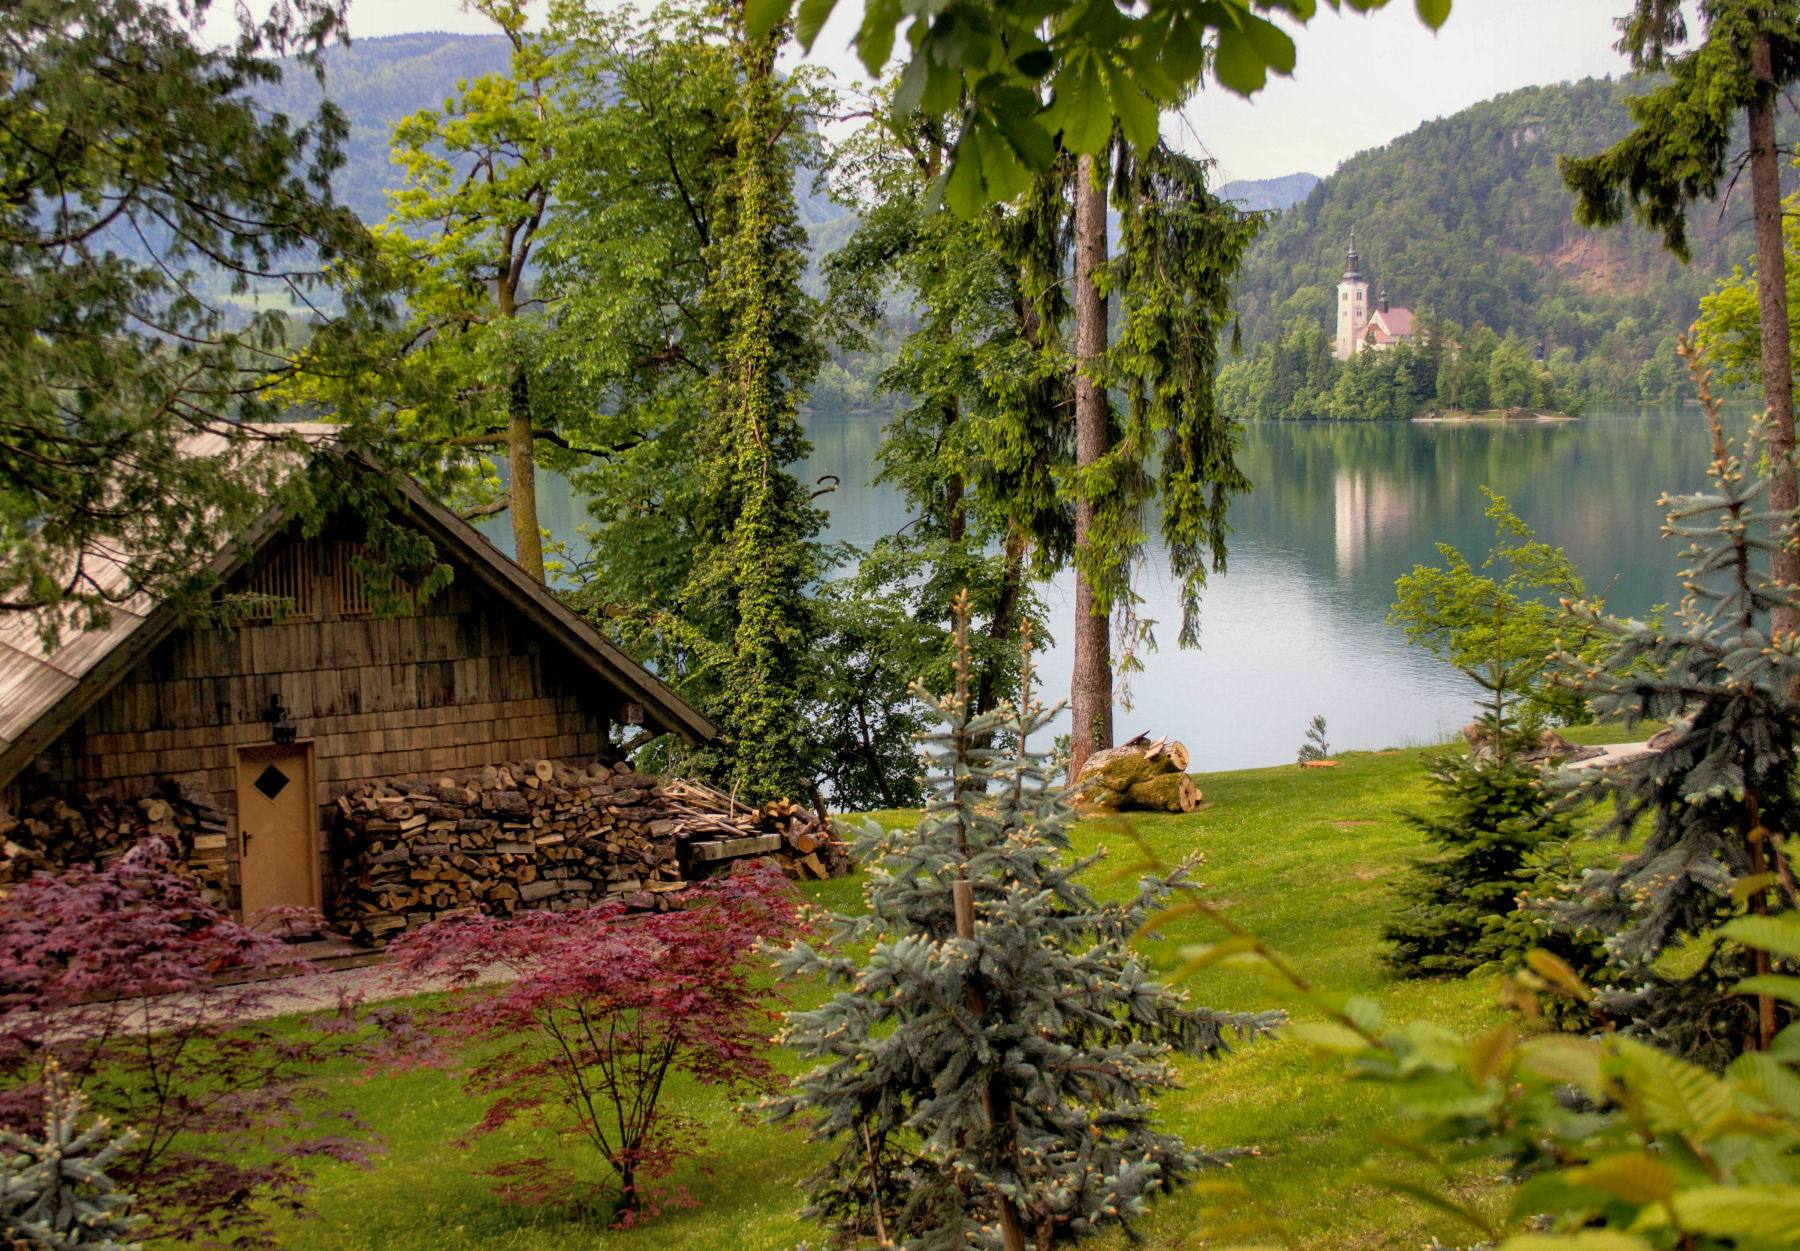 The attribute that makes Bled so extraordinary is definitely its surrounding nature